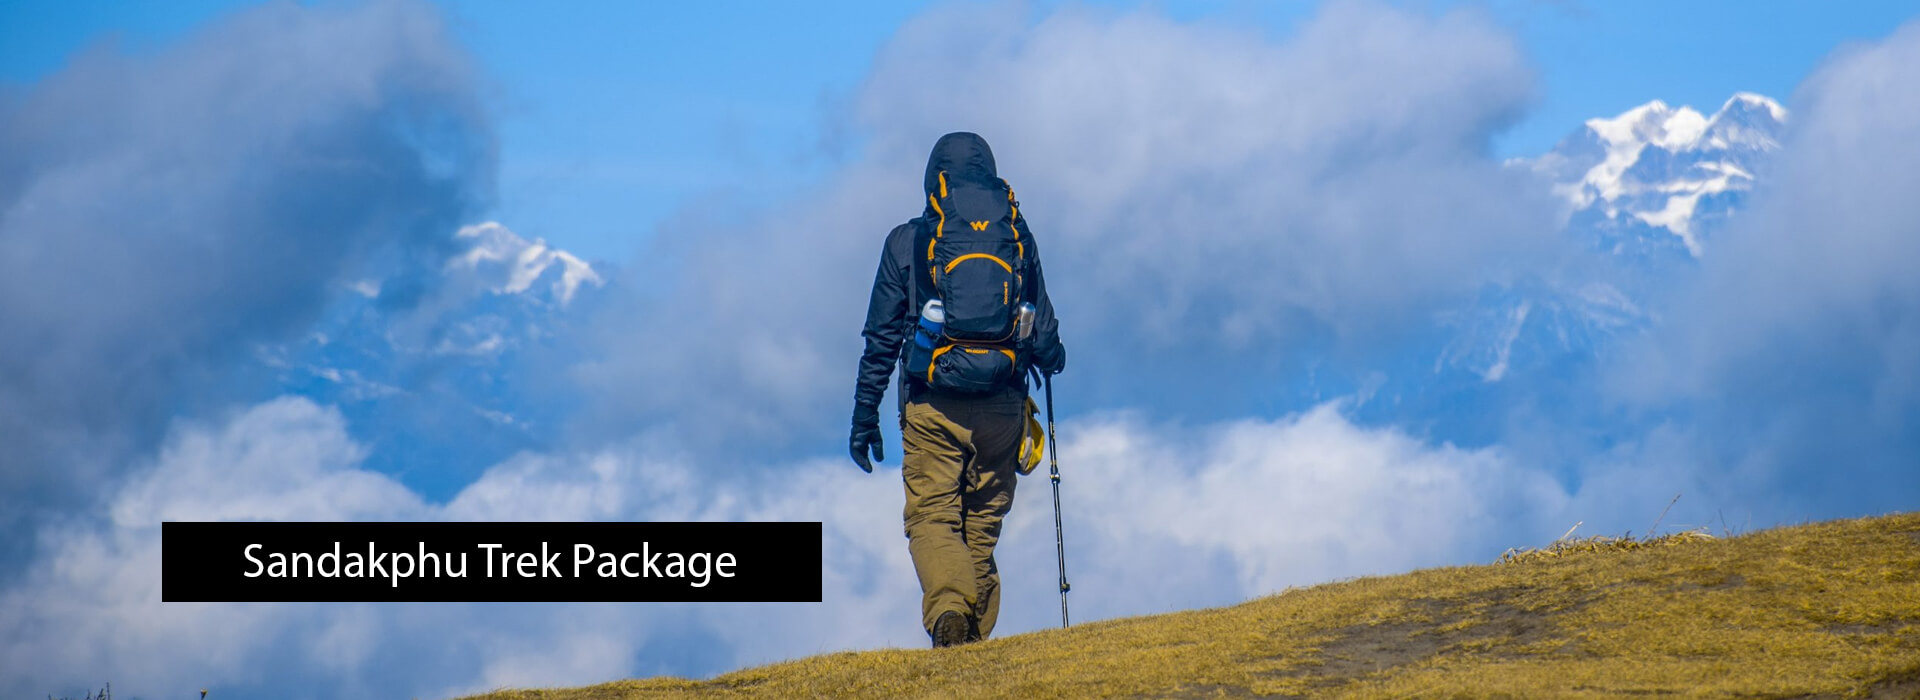 Get complete information of Sandakphu Trek Package with us